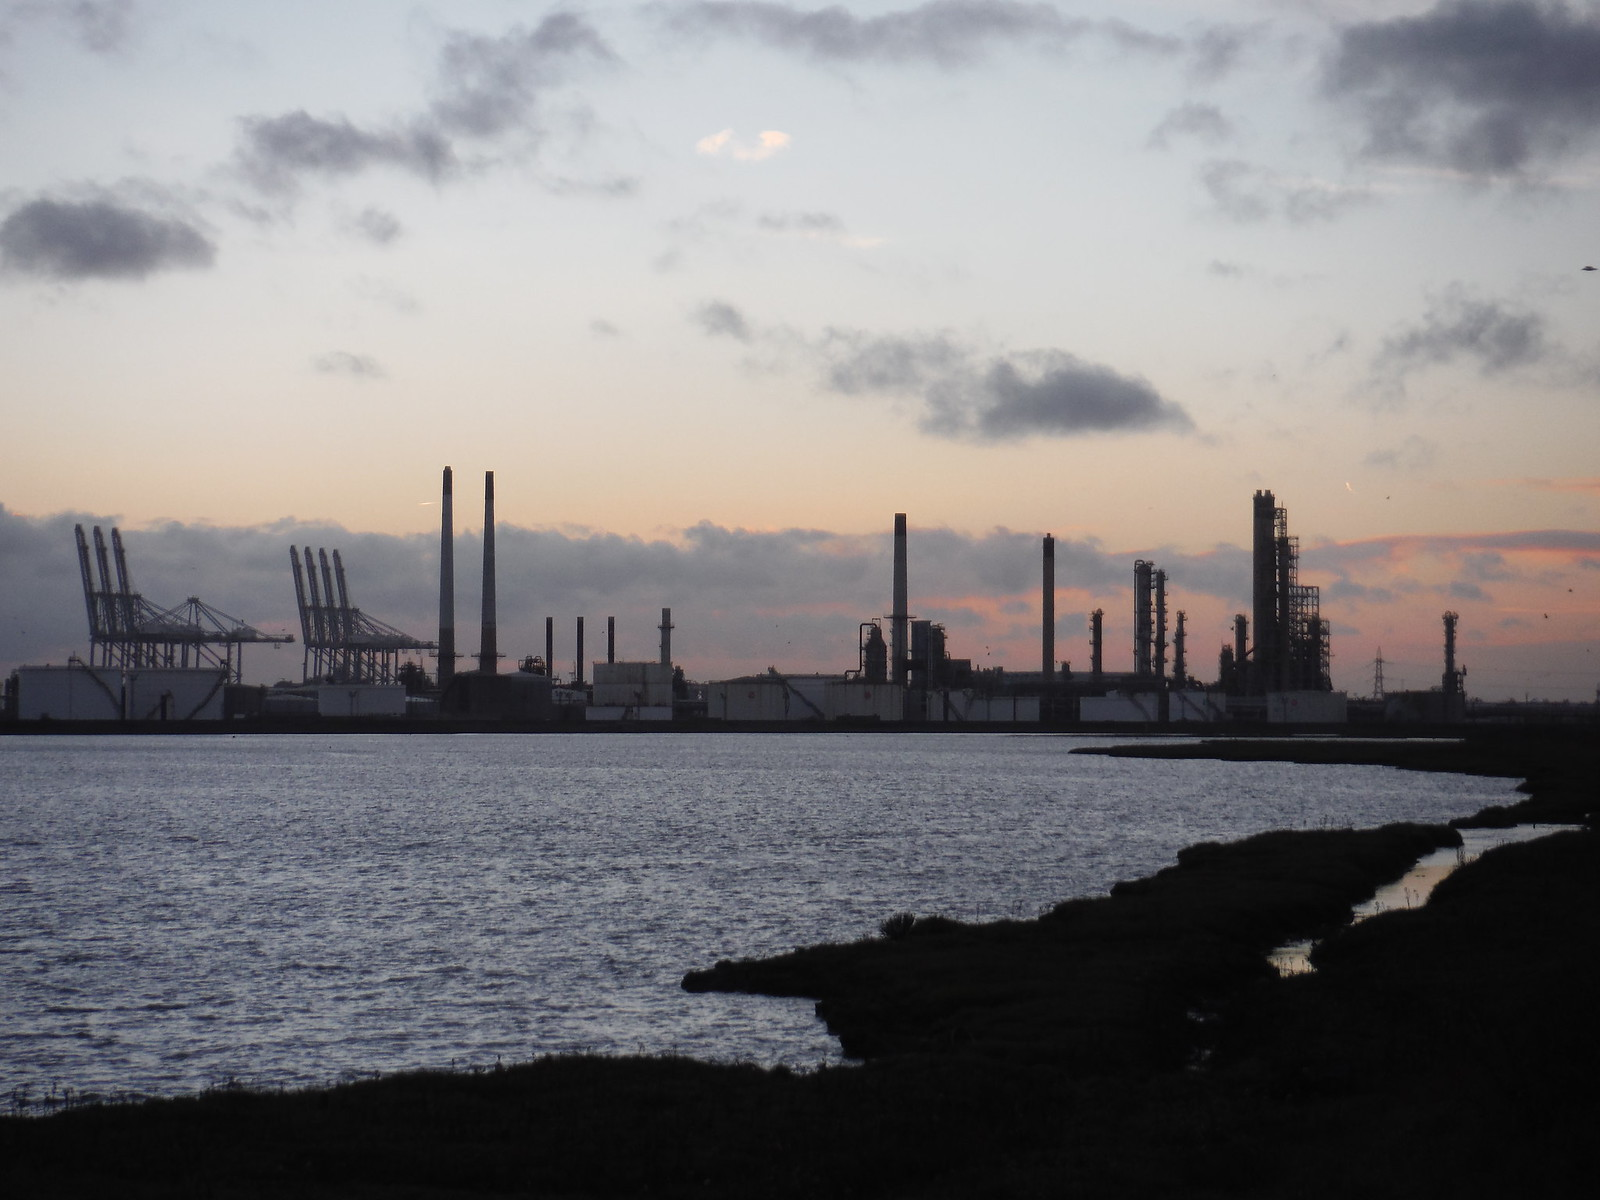 Coryton Oil Refinery and DP World's London Gateway Port, Shell Haven, from Canvey Island SWC Walk 258 Benfleet Circular (via Canvey Island)